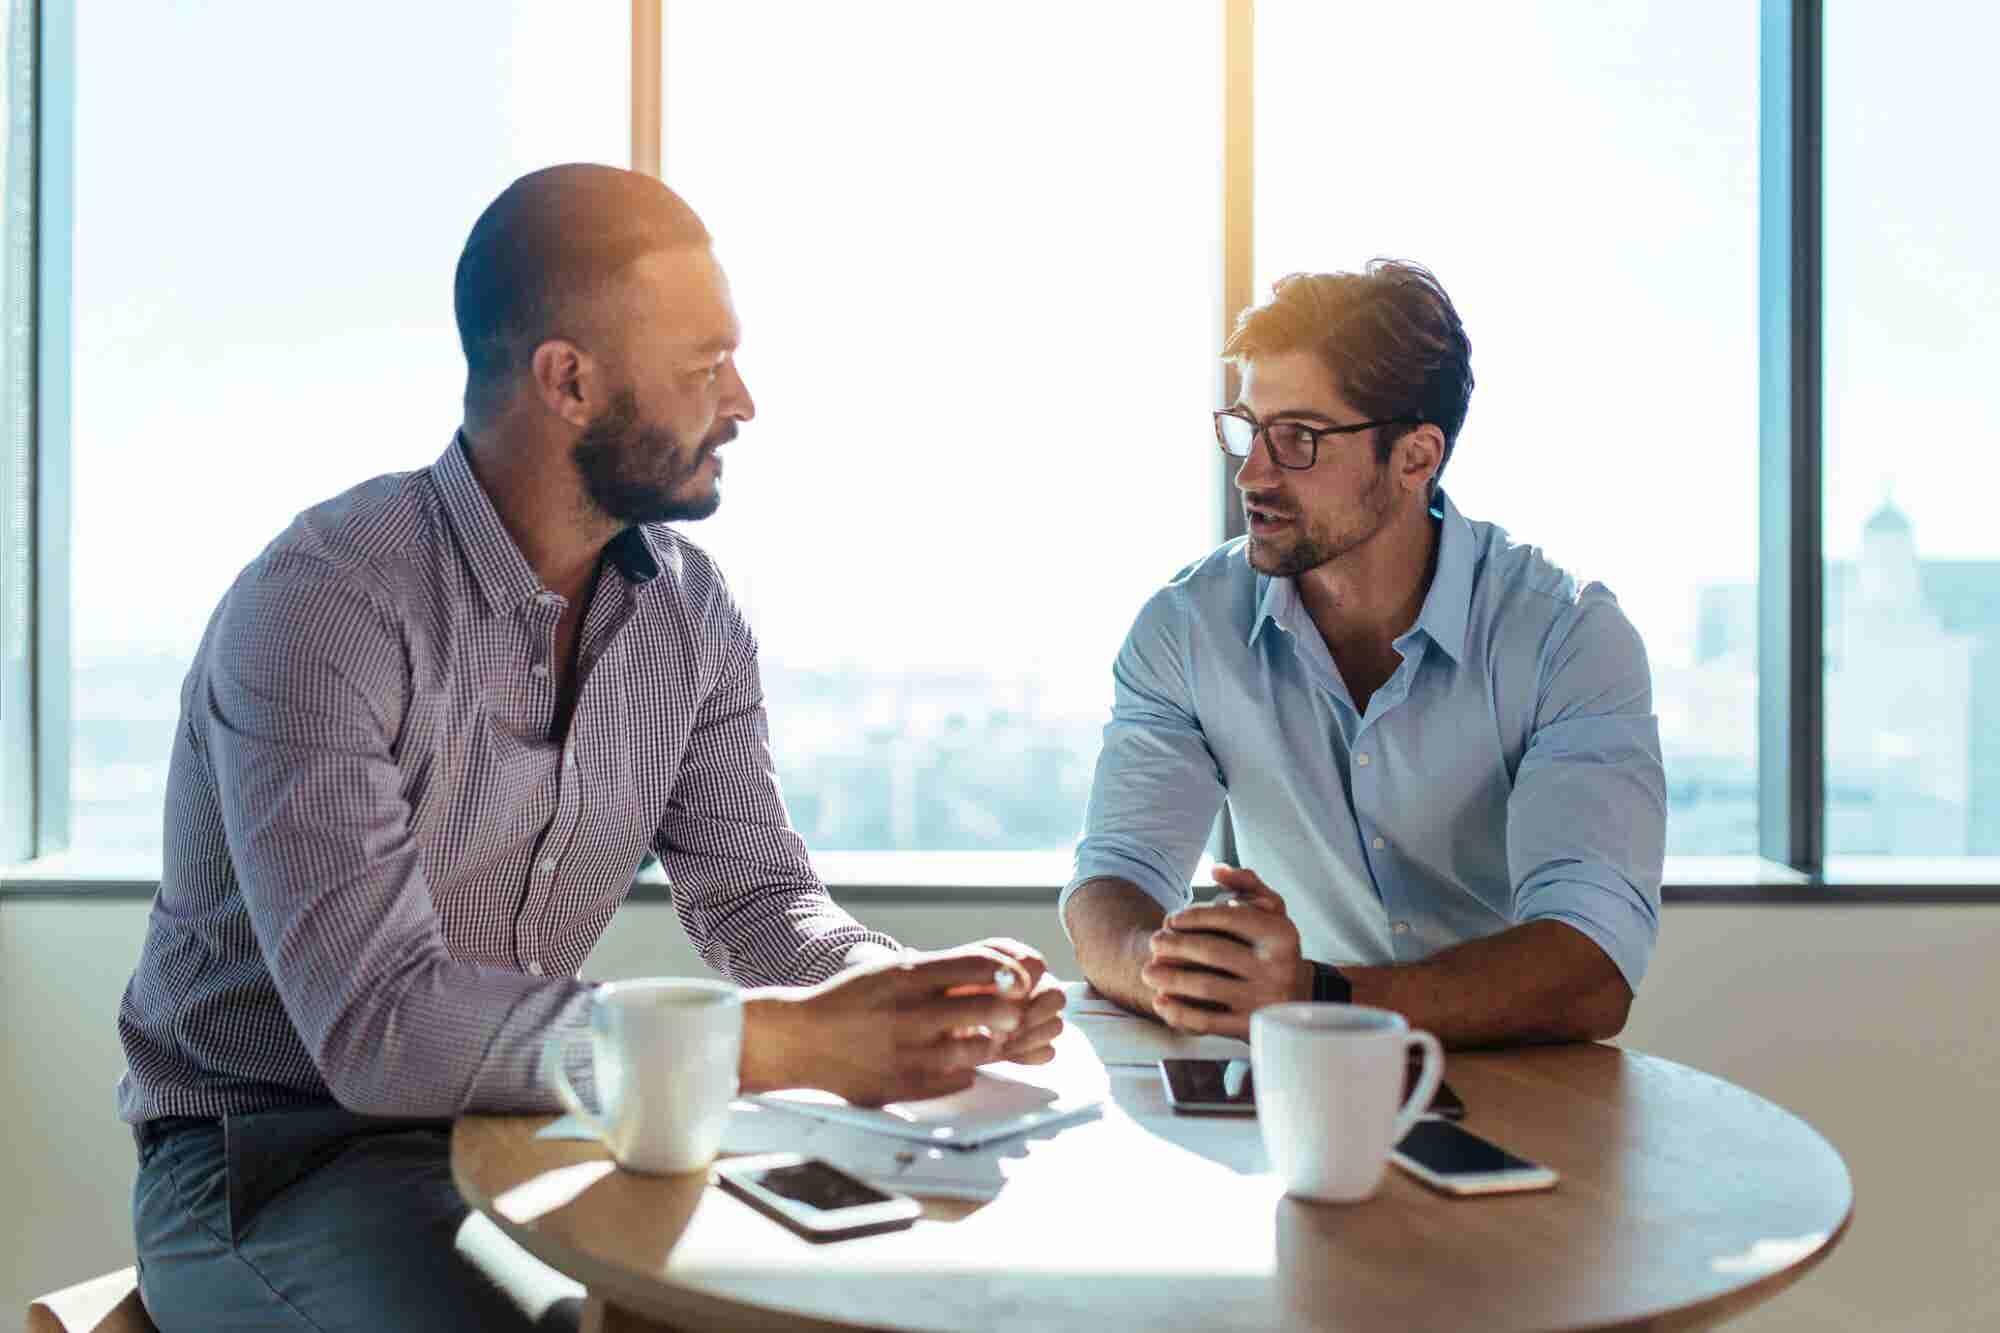 5 Ways to Use Eye Contact in a Business Meeting to Get What You Want